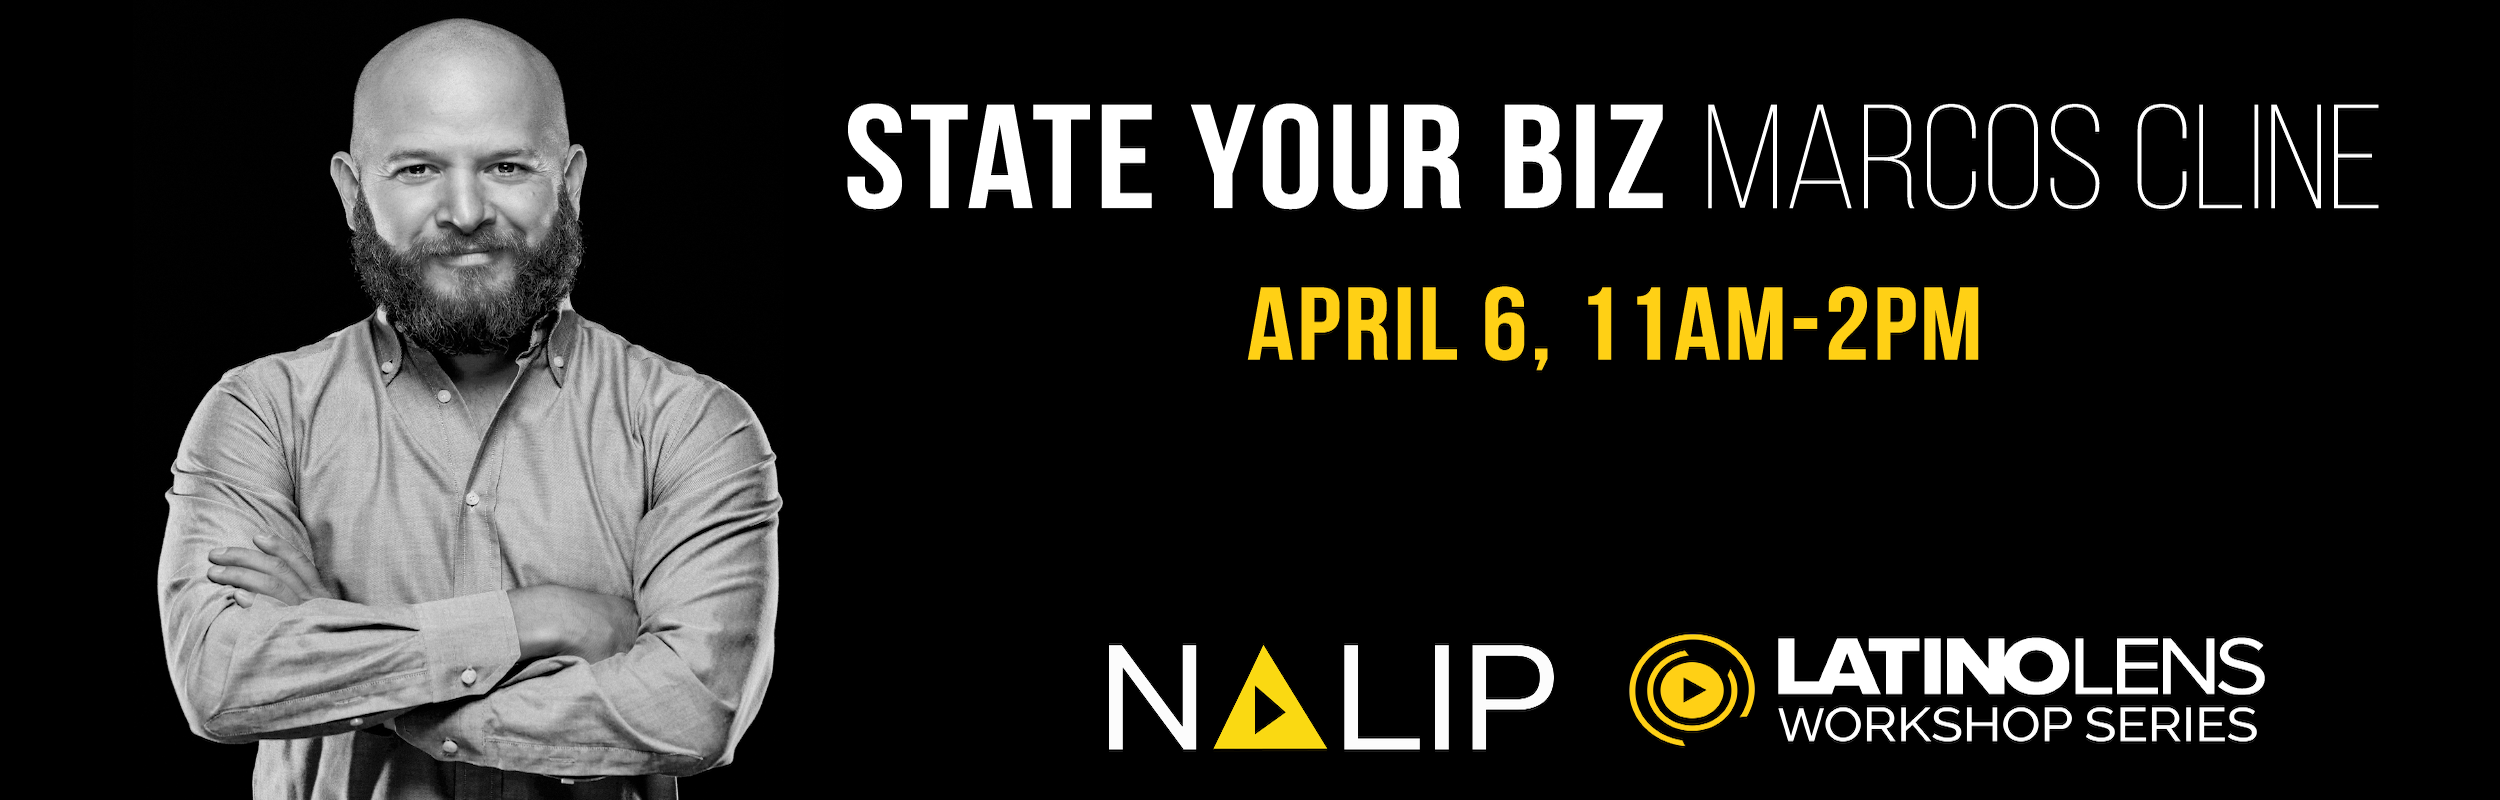 STATE YOUR BIZ WITH MARCOS CLINE